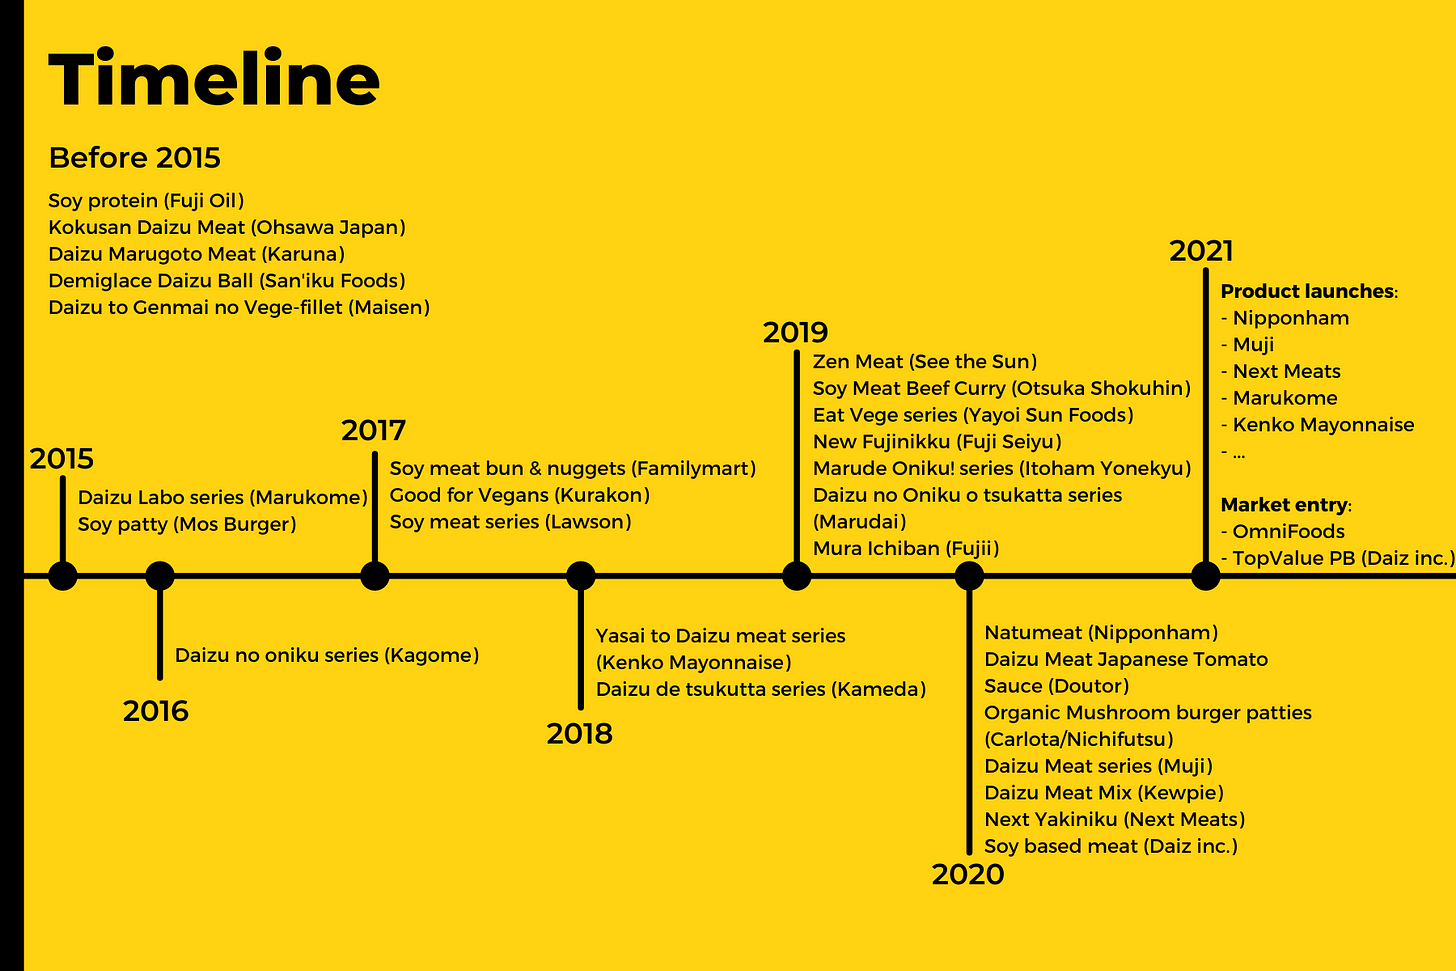 Timeline of plant-based meat product apparition